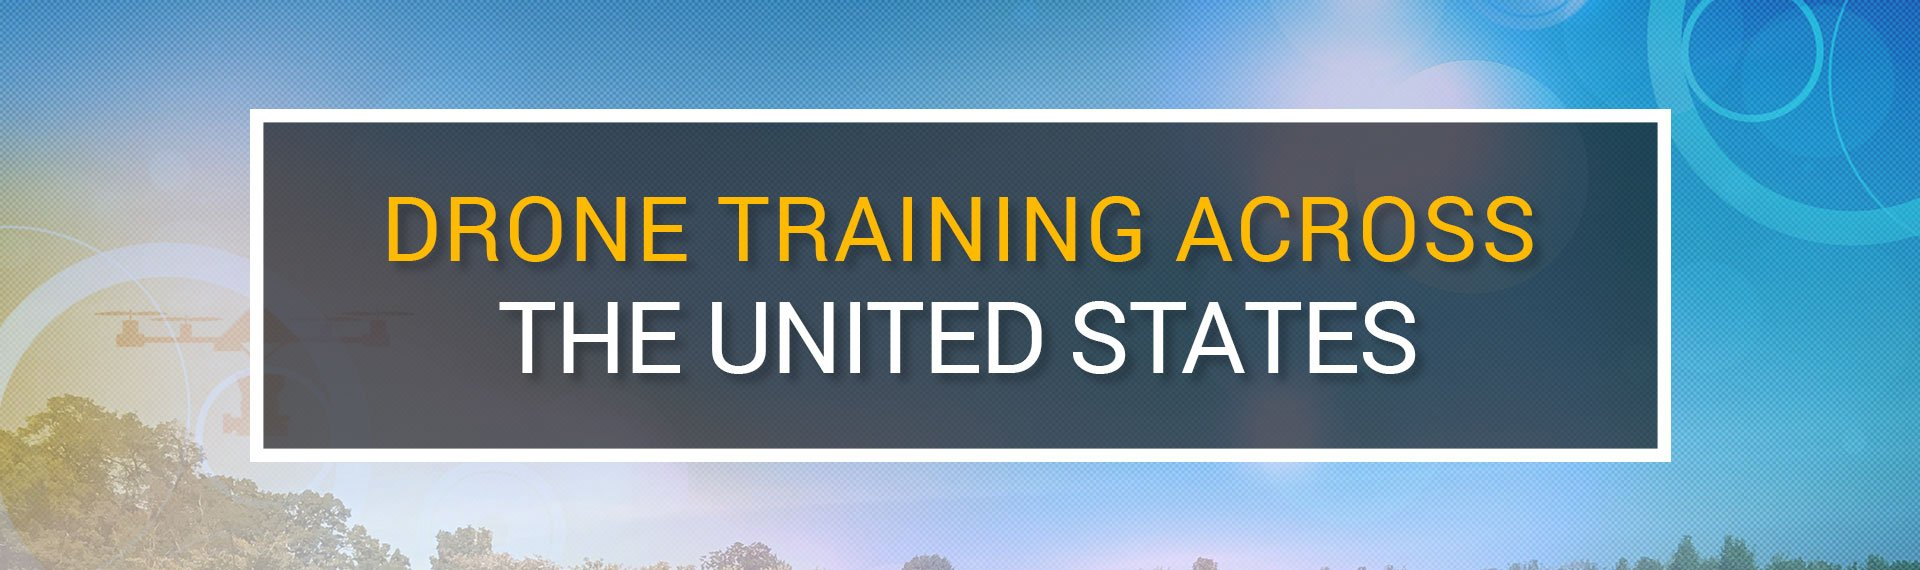 Drones Training Across The United States - Steel City Drones Flight Academy